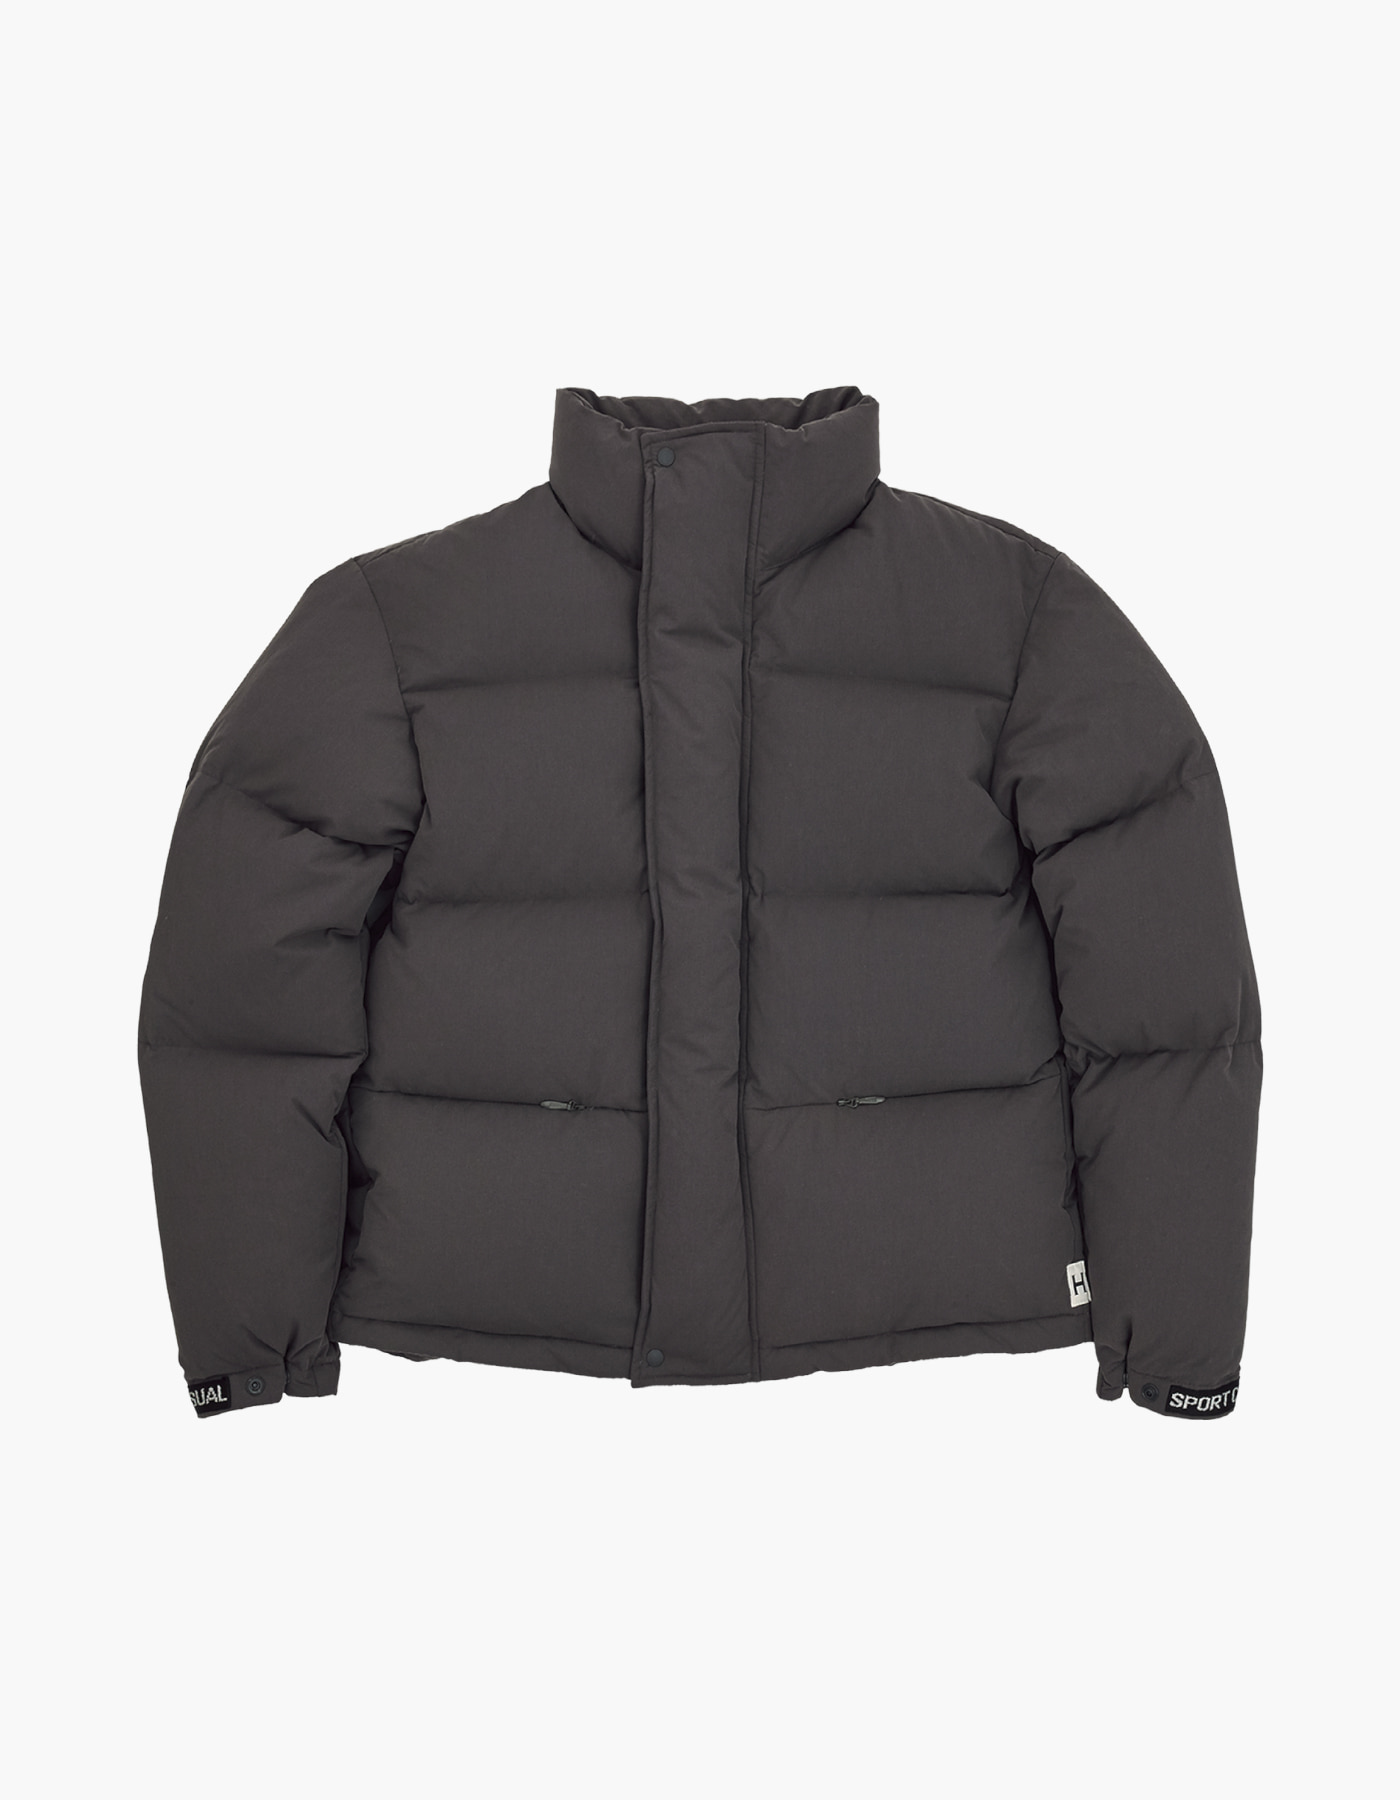 700 PUFFY GOOSE DOWN JACKET / CHARCOAL